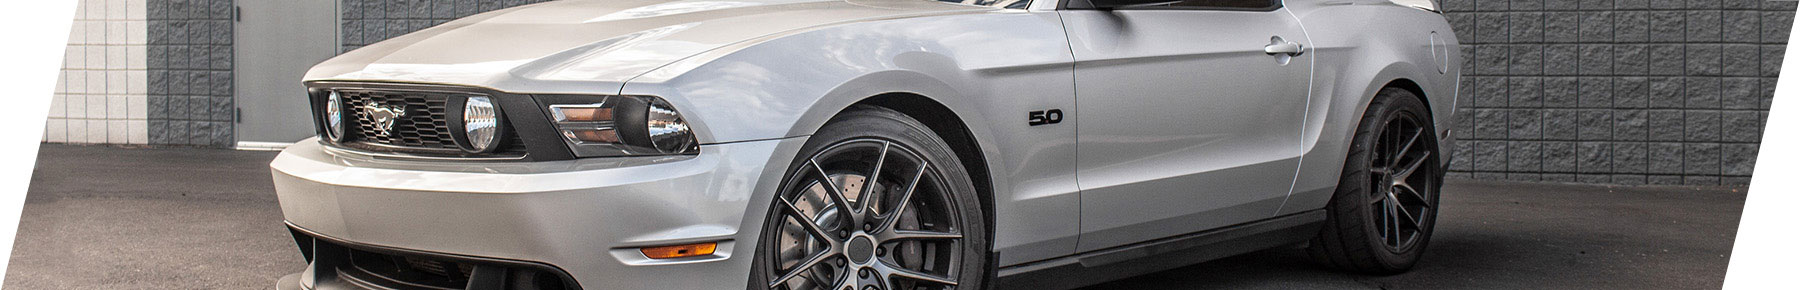 2011-2014 Mustang Performance Parts